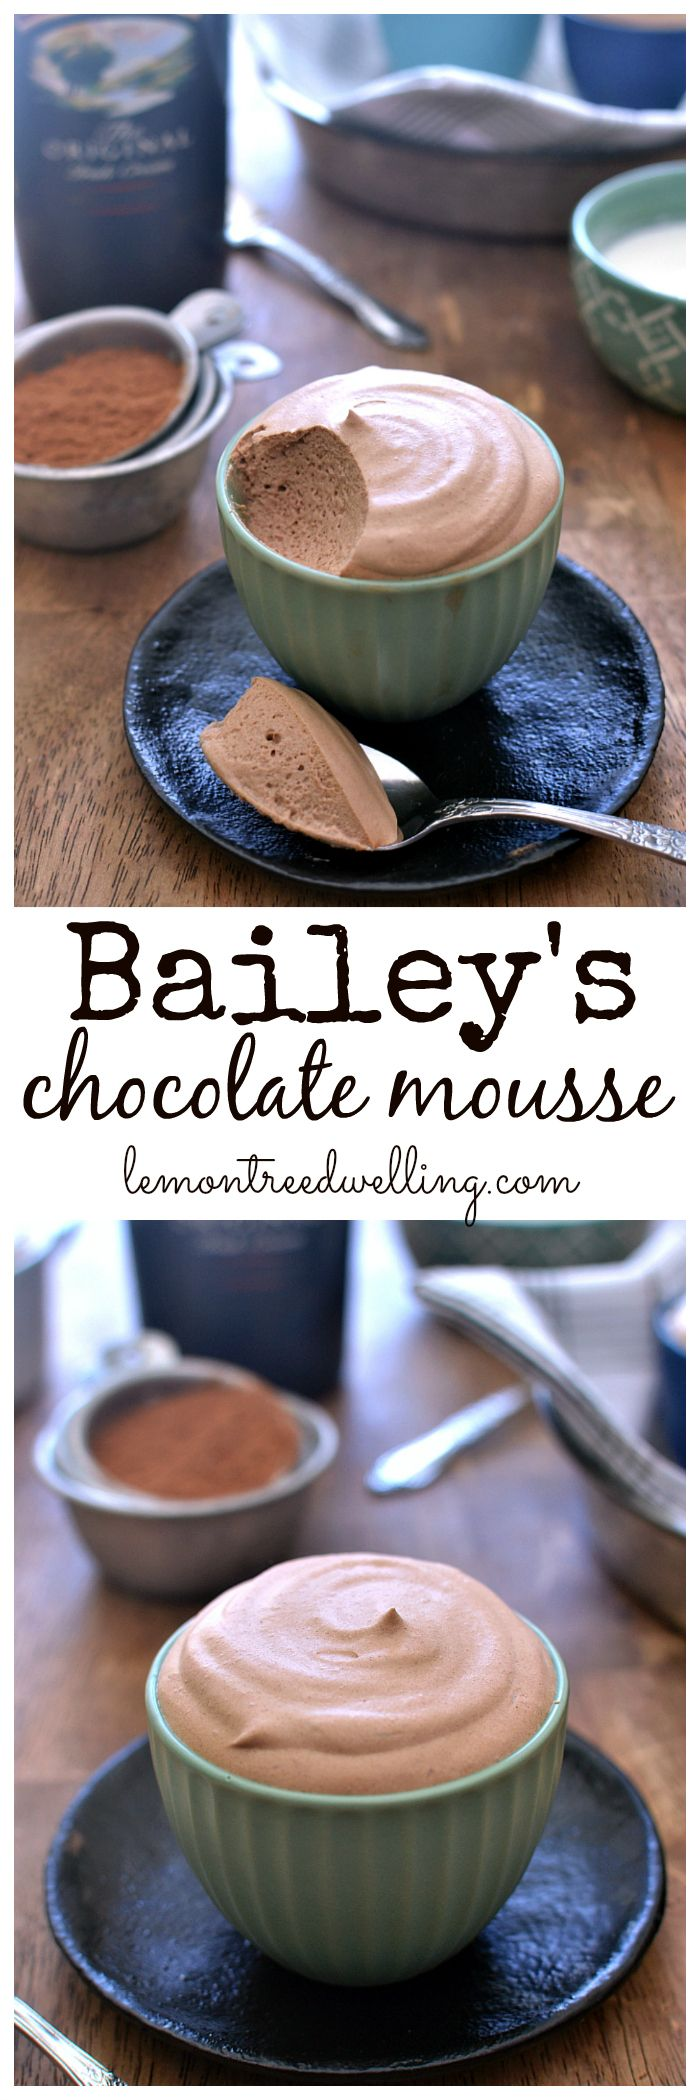 Bailey Mousse de Chocolate